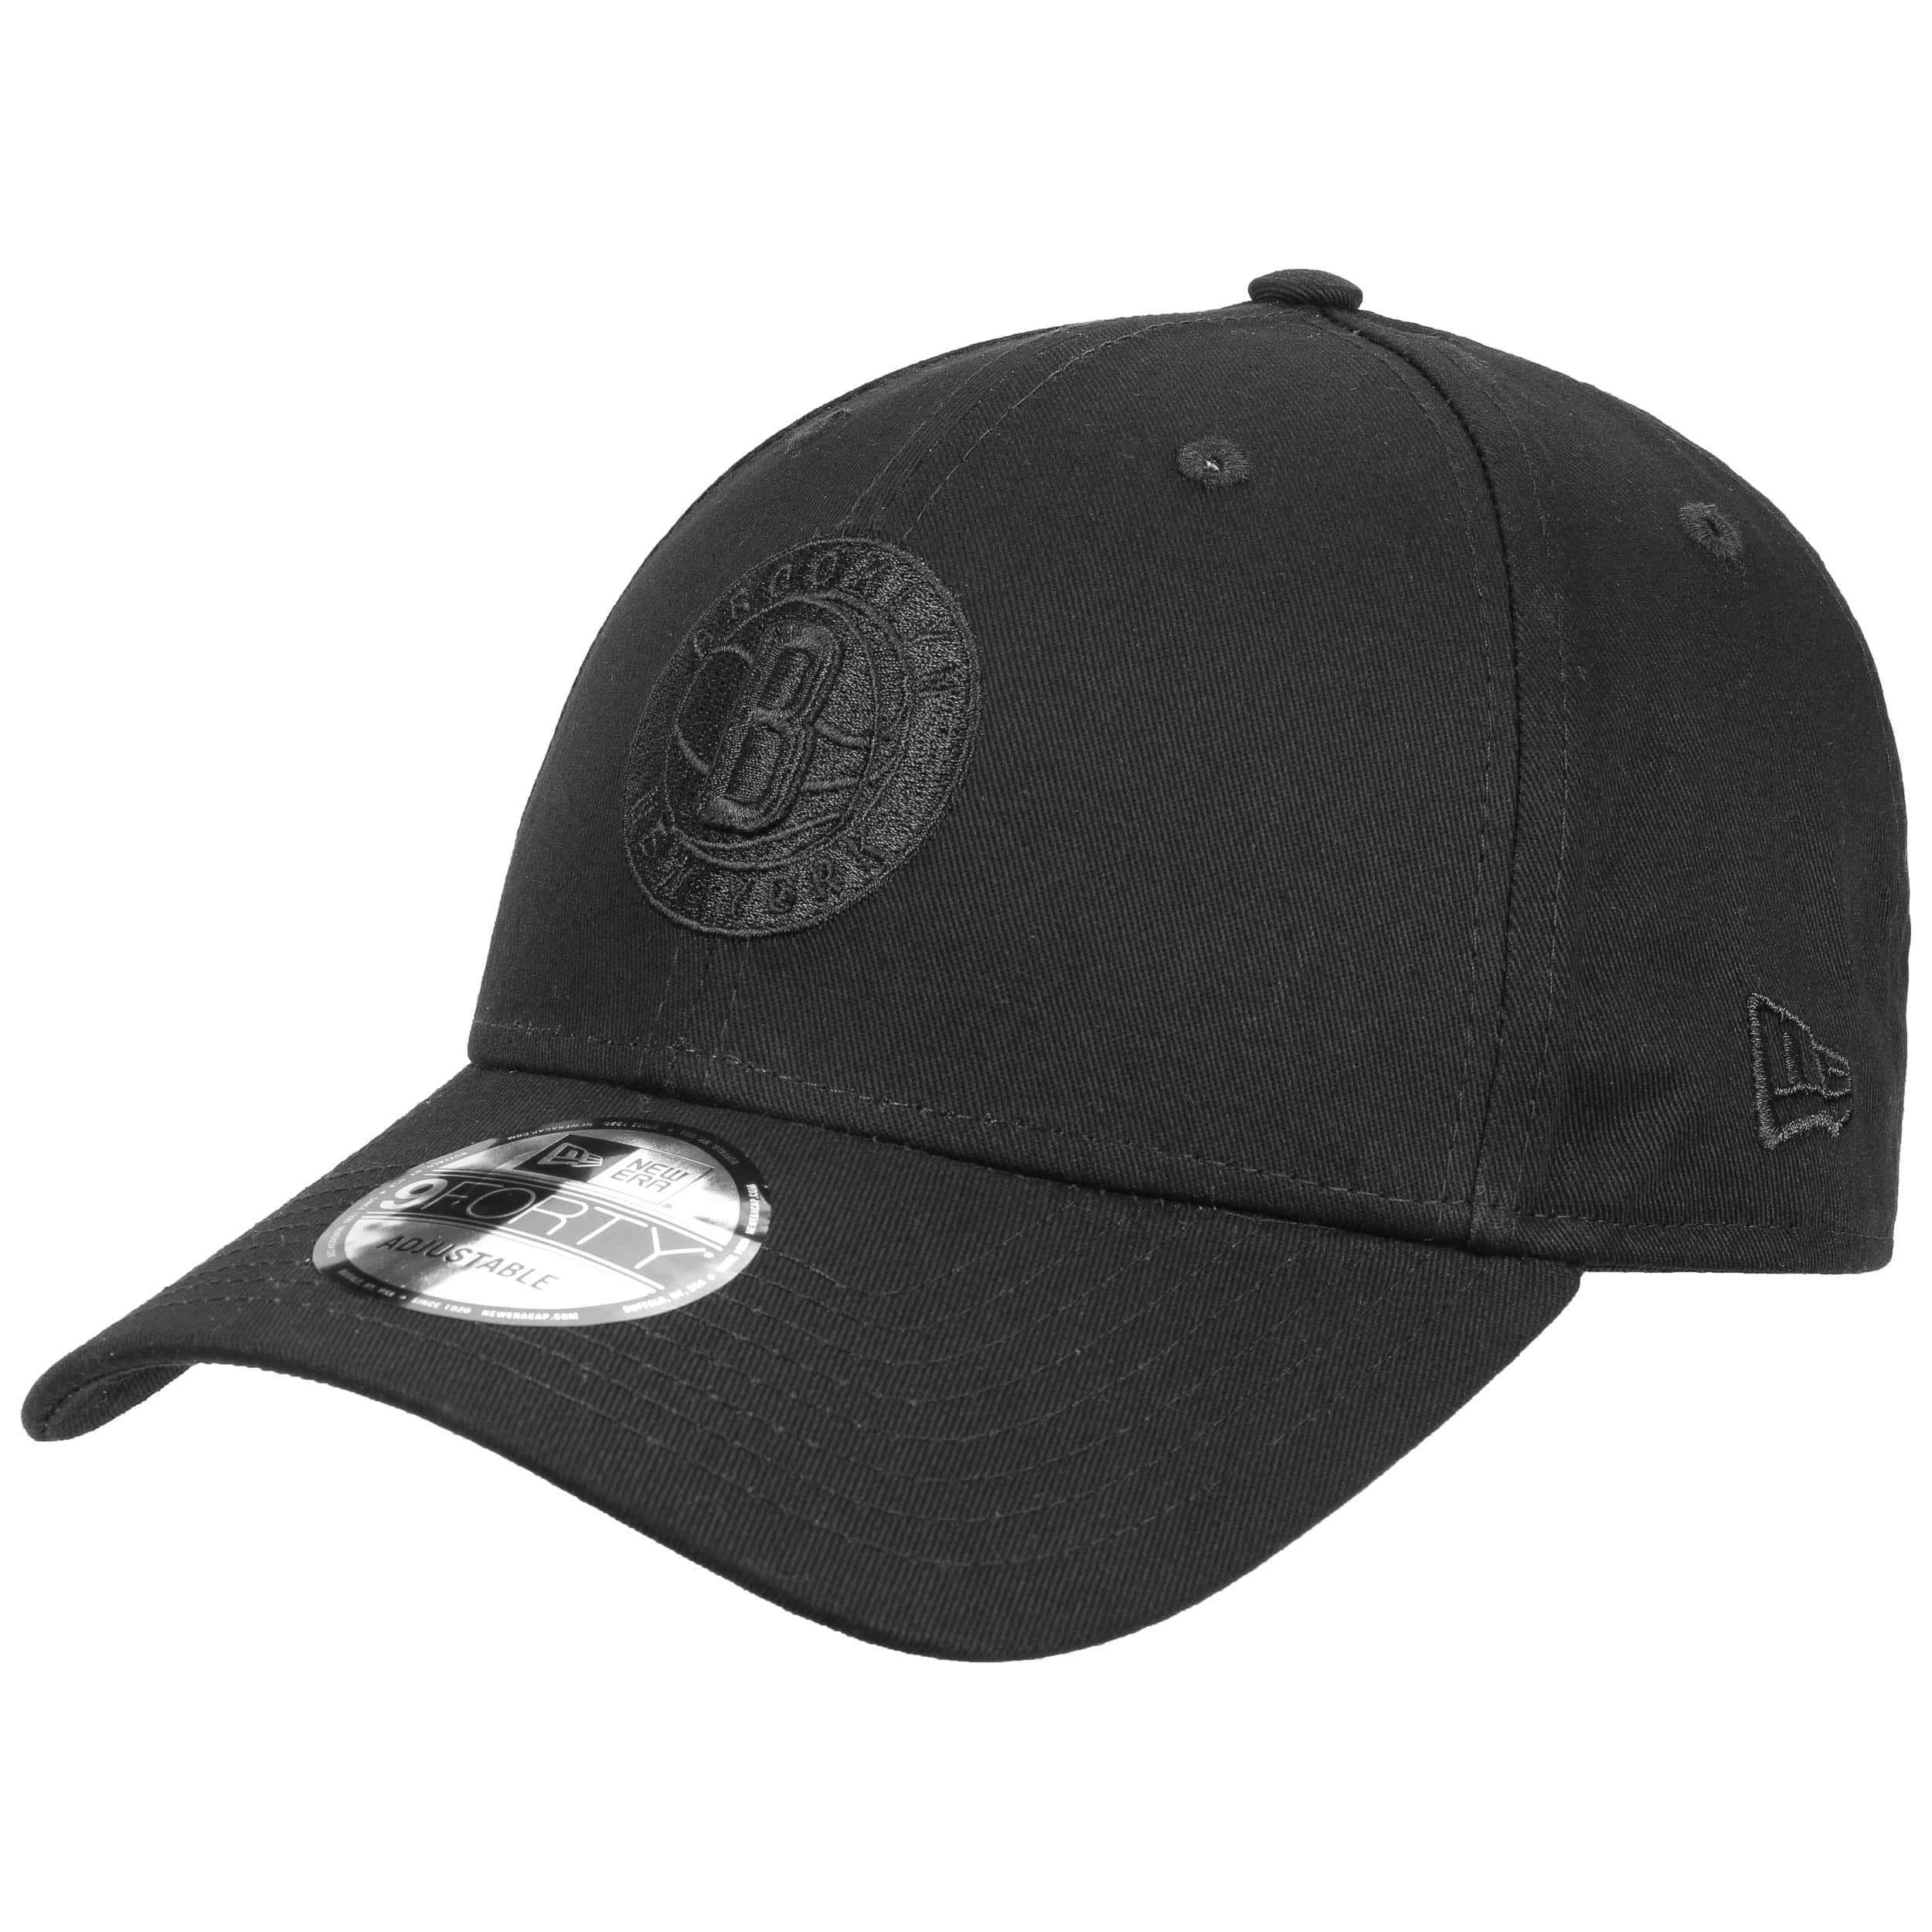 05bb7bba27bc4 Gorra 9Forty BOB Brooklyn Nets by New Era - Gorras - sombreroshop.es